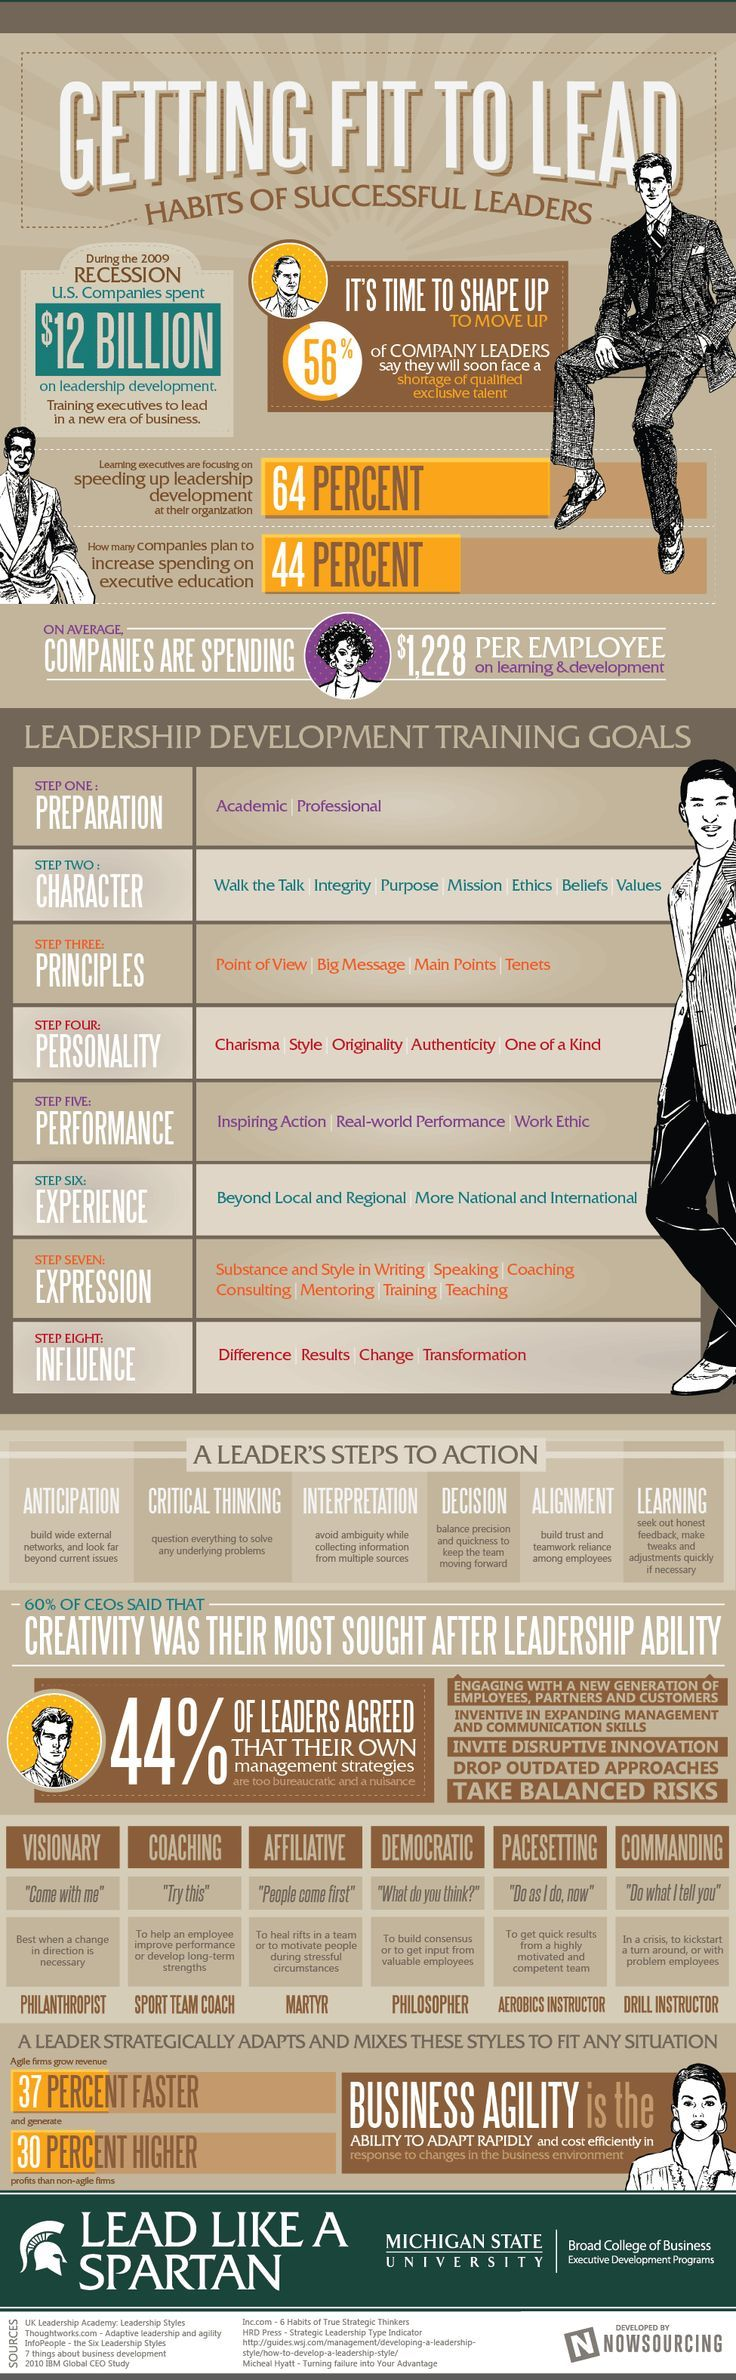 Getting Fit to Lead [Infographic] - Habits of successful leaders | #leadership #successhabits #management